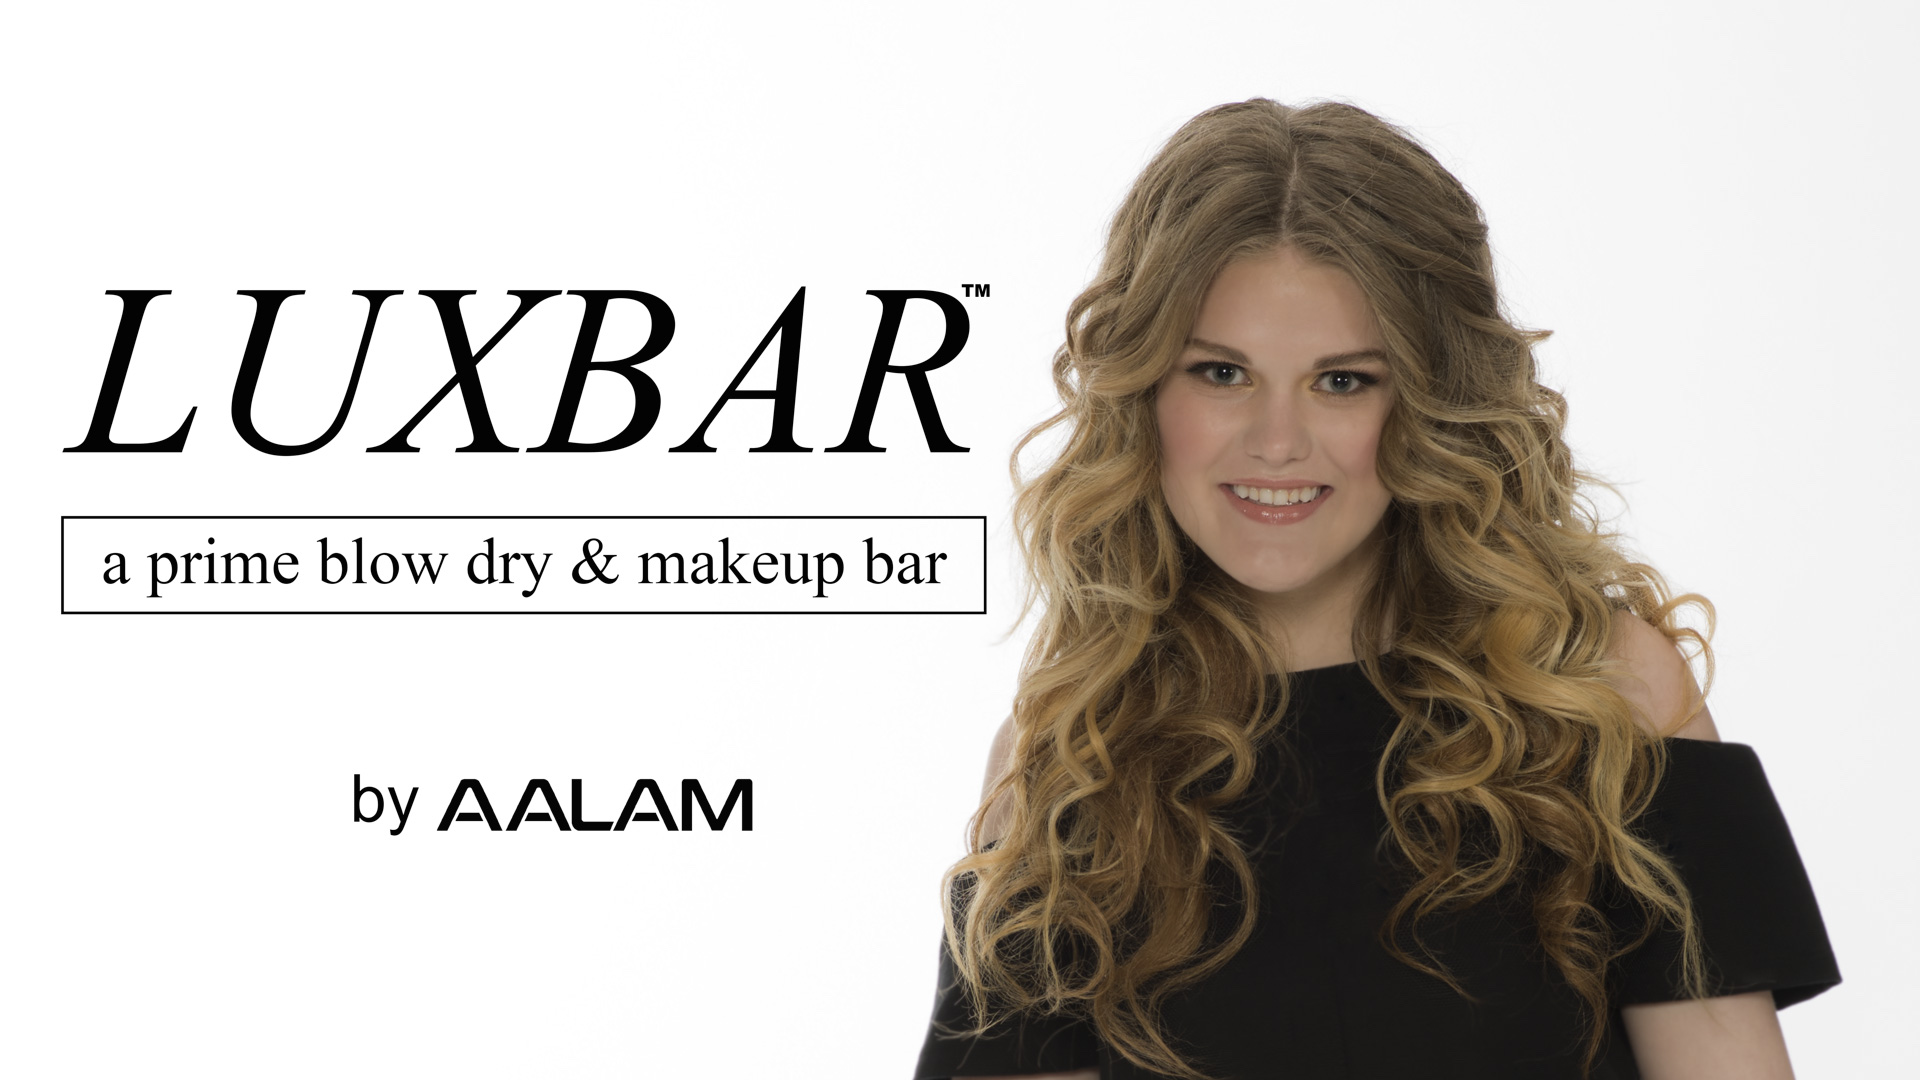 LUXBAR dry bar Salon Plano Blow Dry Bar Dallas Best Blow Dry Bar Frisco salon Blowout Bar Makeup Bar Allen McKinney Addison TX DFW Dallas Plano Frisco Blow Dry Bar Makeup by AALAM The Salon USA